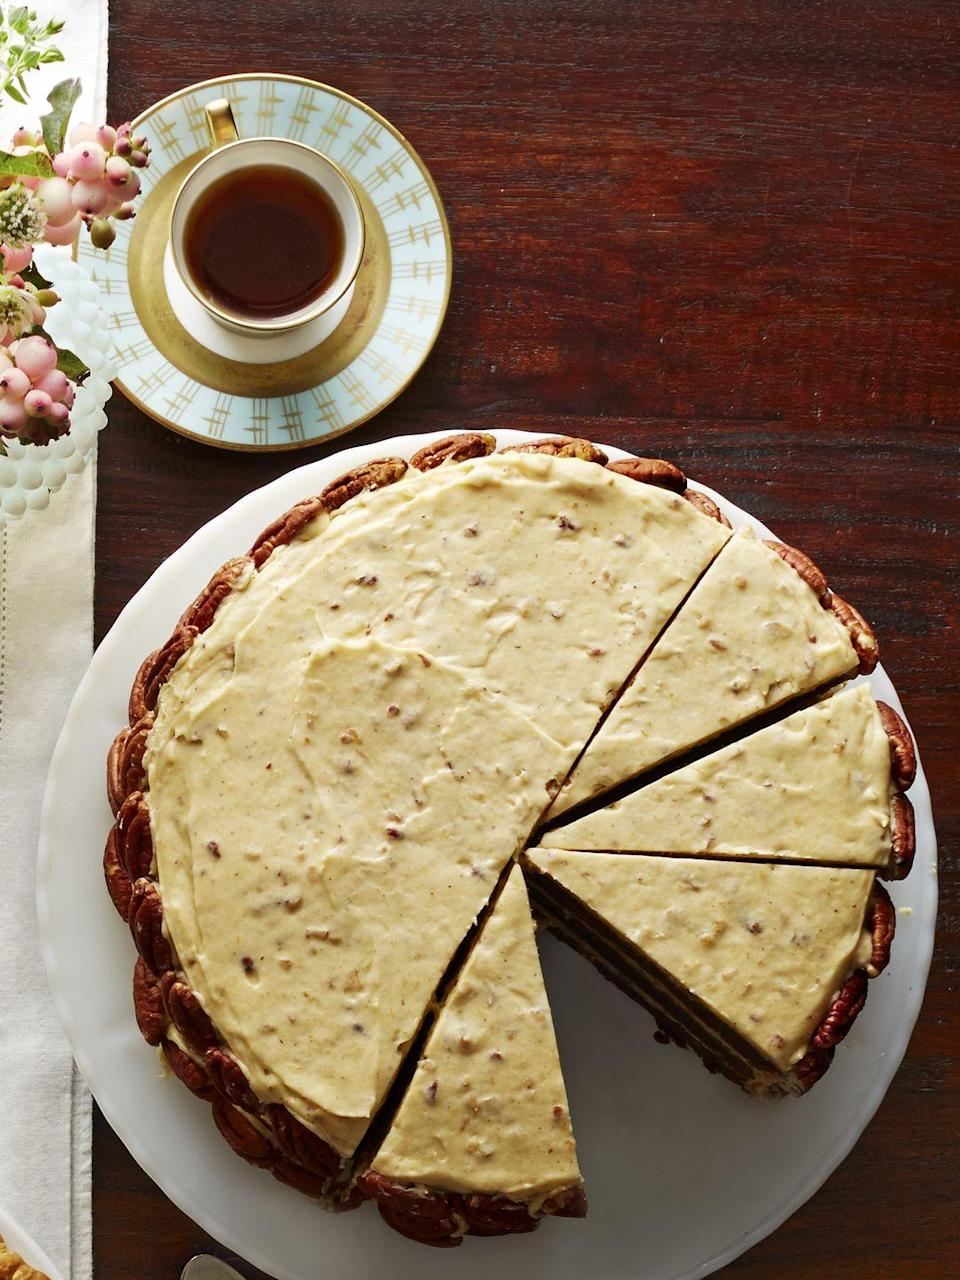 "<p>Don't be fooled by those gorgeous-but-intimidating layers. Partially freezing them makes this cake easy to fill and frost. Did we mention the pumpkin frosting?</p><p><a href=""https://www.goodhousekeeping.com/food-recipes/a16154/chocolate-brown-sugar-butter-cake-spiced-pumpkin-frosting-recipe-clx1114/"" rel=""nofollow noopener"" target=""_blank"" data-ylk=""slk:Get the recipe for Chocolate Brown Sugar Butter Cake with Pumpkin Frosting »"" class=""link rapid-noclick-resp""><em>Get the recipe for Chocolate Brown Sugar Butter Cake with Pumpkin Frosting »</em></a></p>"